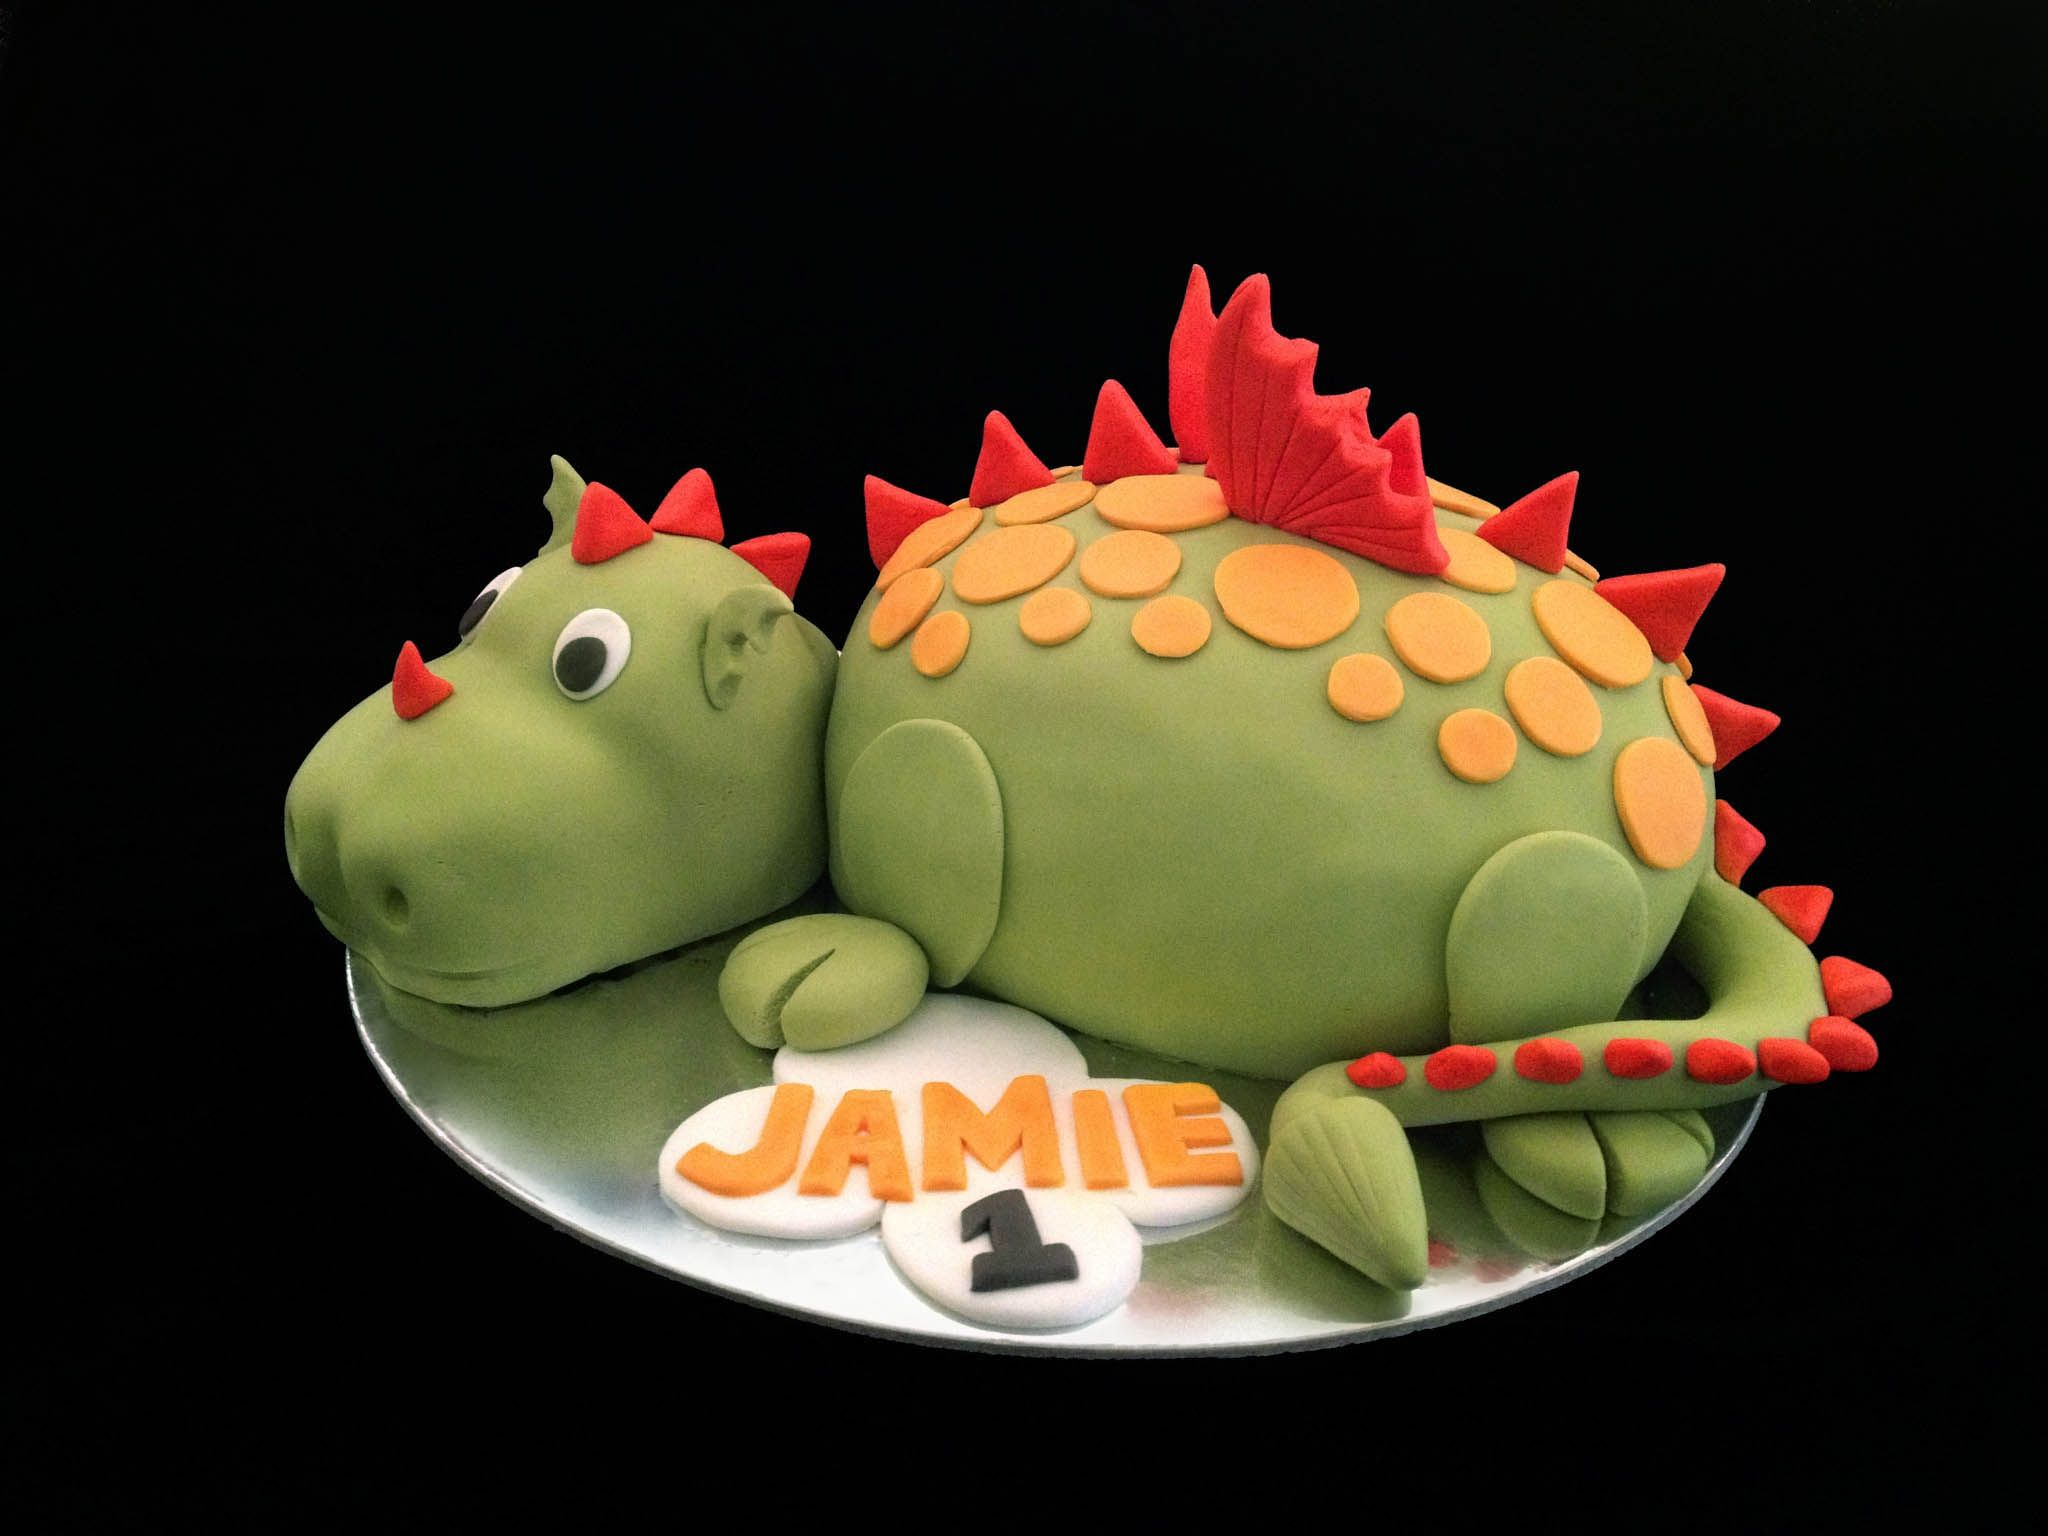 Baby dragon cake - chocolate cake with chocolate jaffa buttercream icing, finished with fondant for deco.  bakeatreat2@gmail.com